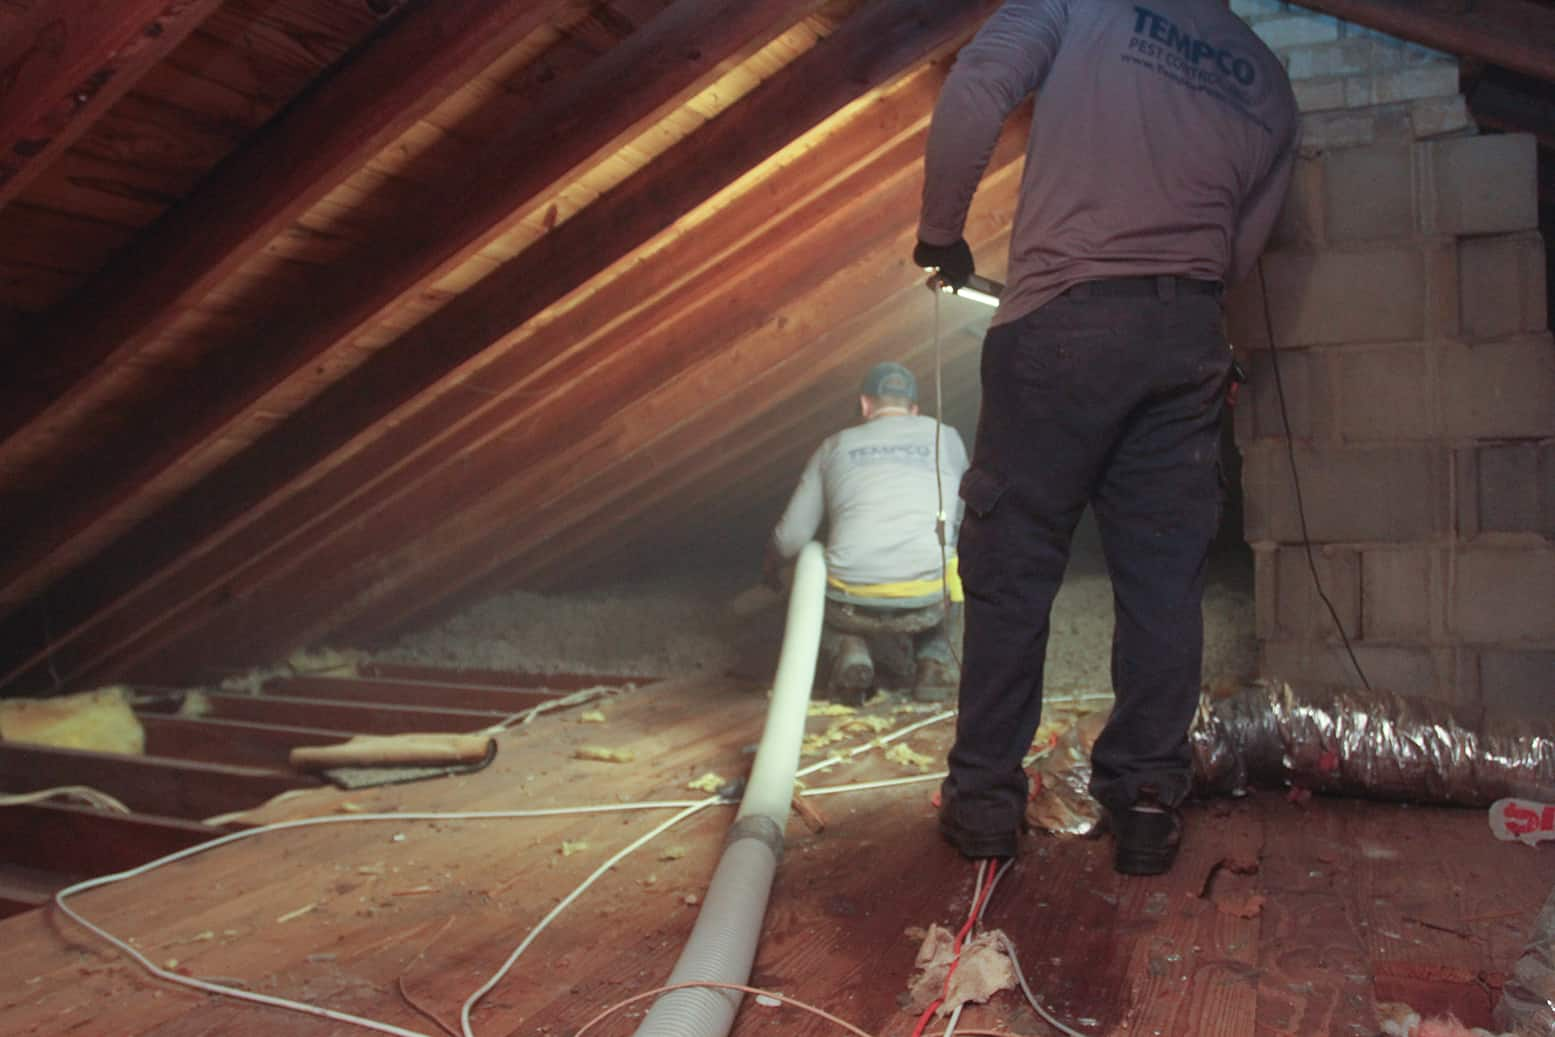 Tempco Pest Control Team started attic restoration with a large white hose.